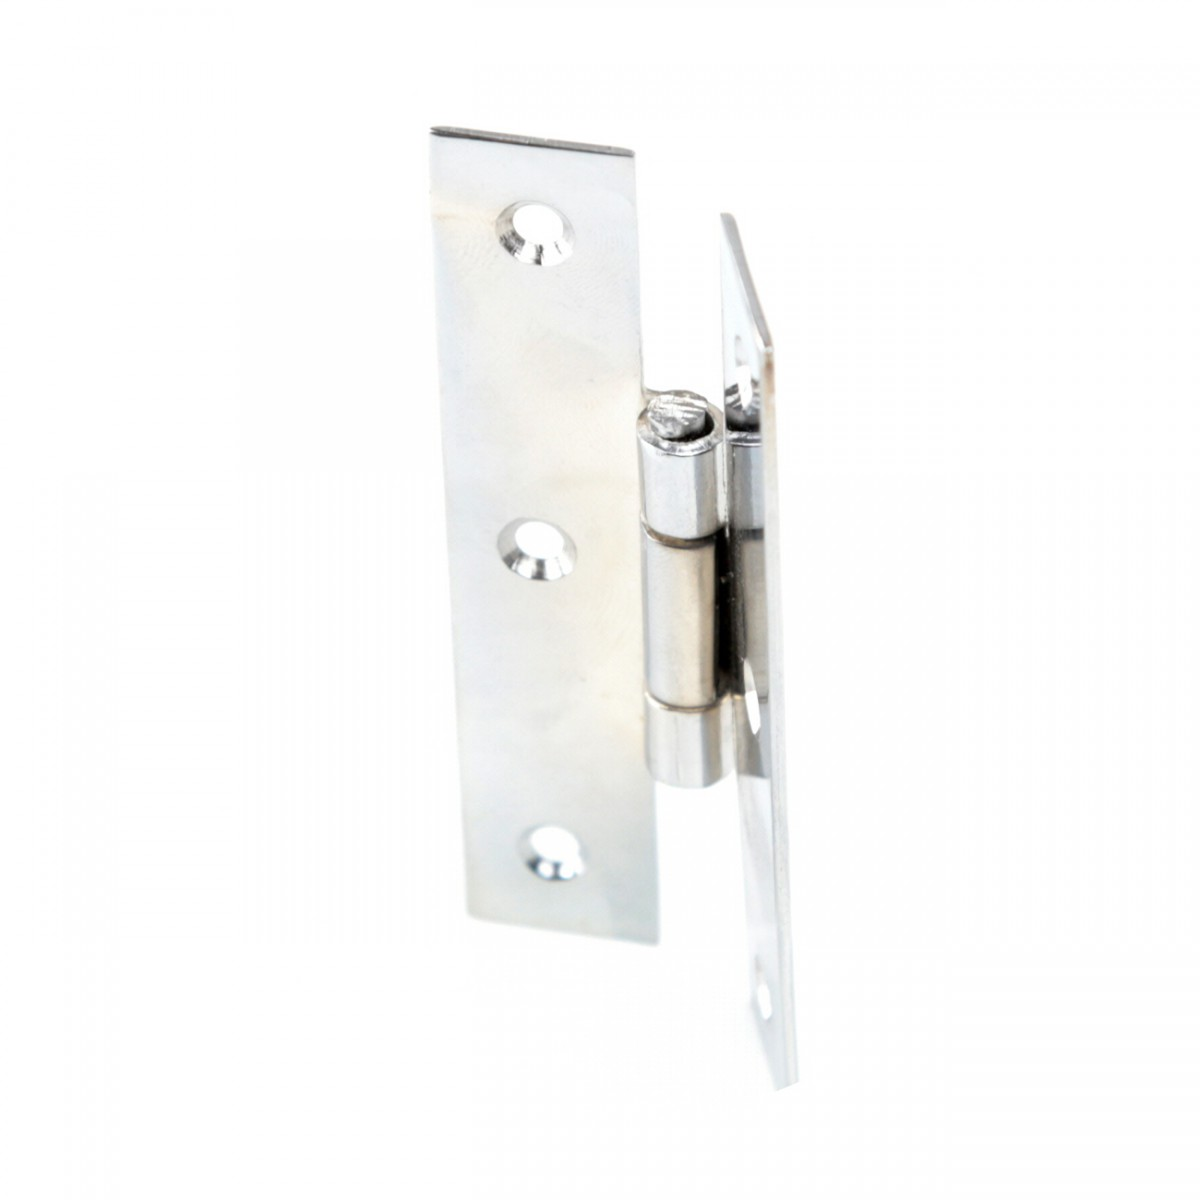 Chrome Cabinet Hinges H Hinges For Cabinets Chrome Door Hinges